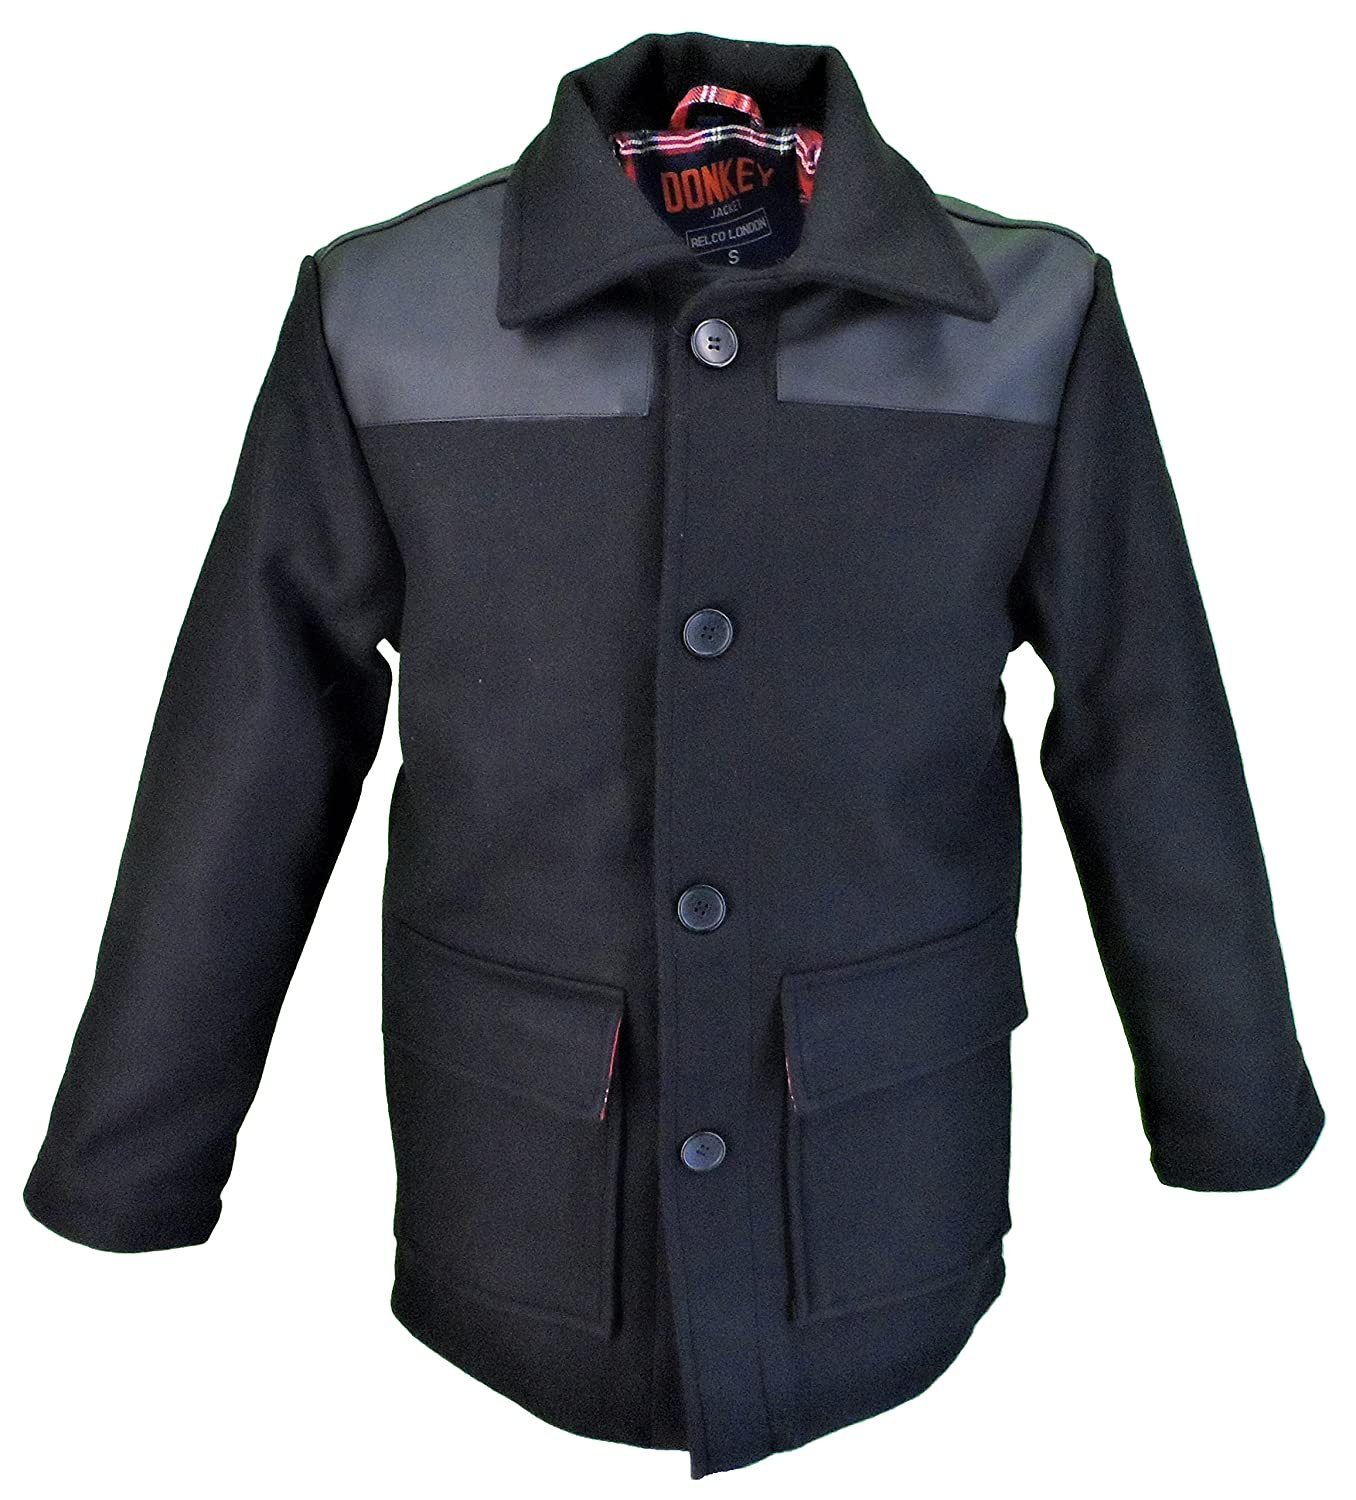 60s 70s Men's Jackets & Sweaters Relco Mens Retro Donkey Jacket £84.99 AT vintagedancer.com